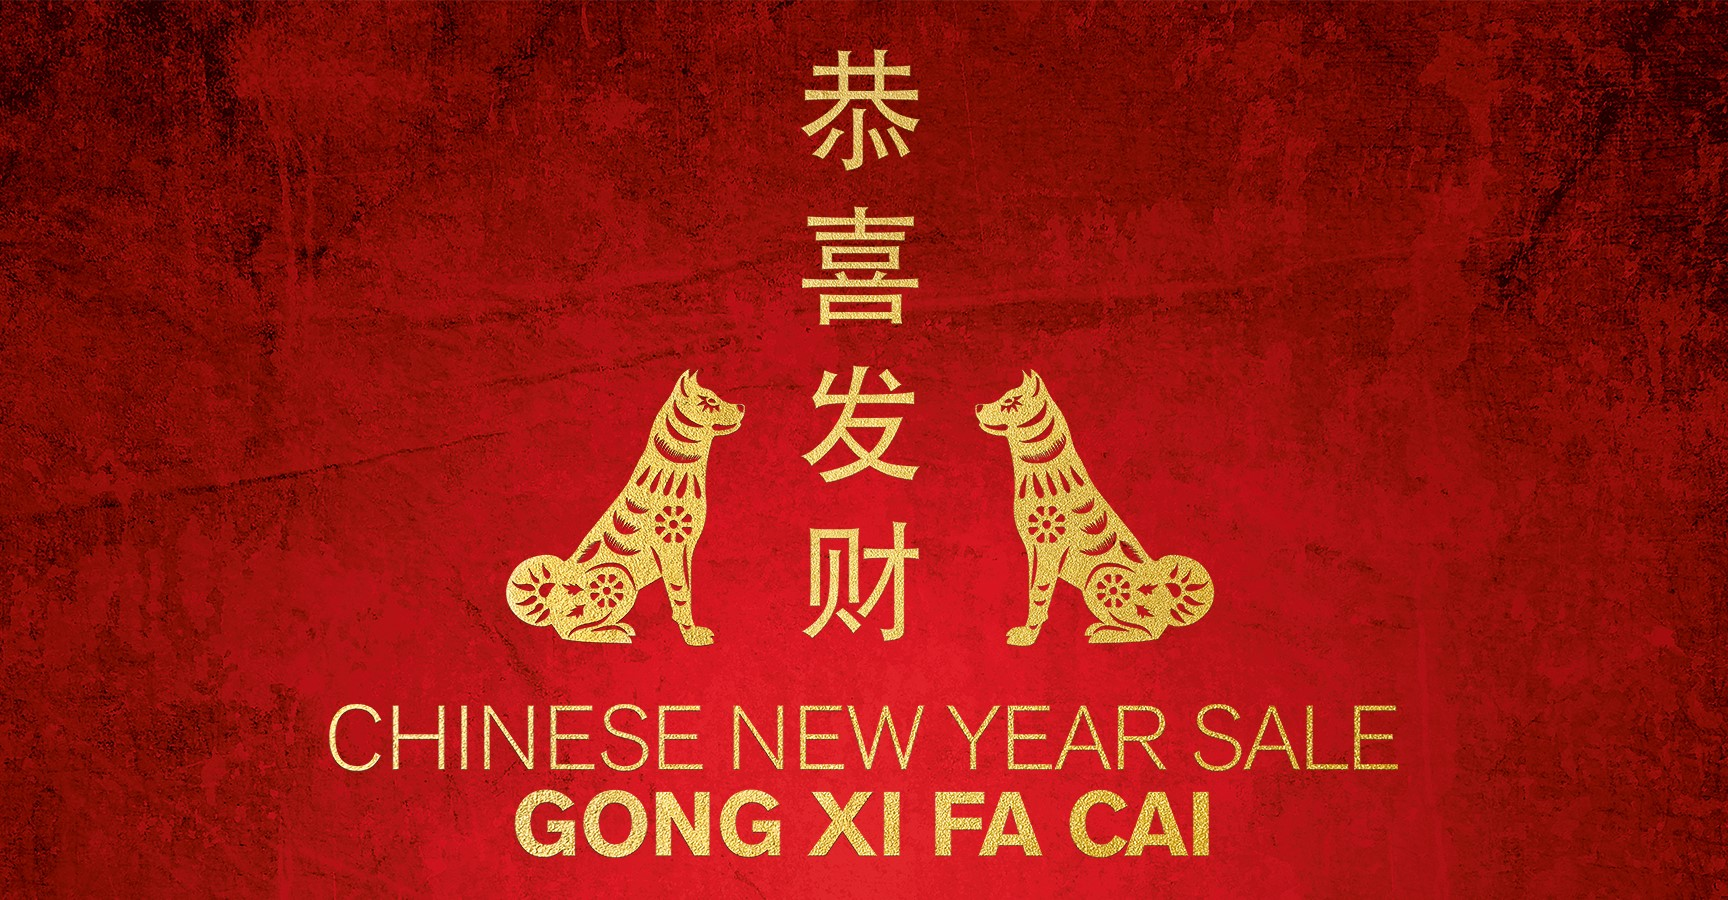 Chinese New Year Sale - das Jahr des Hundes - Alle Angbote hier ...